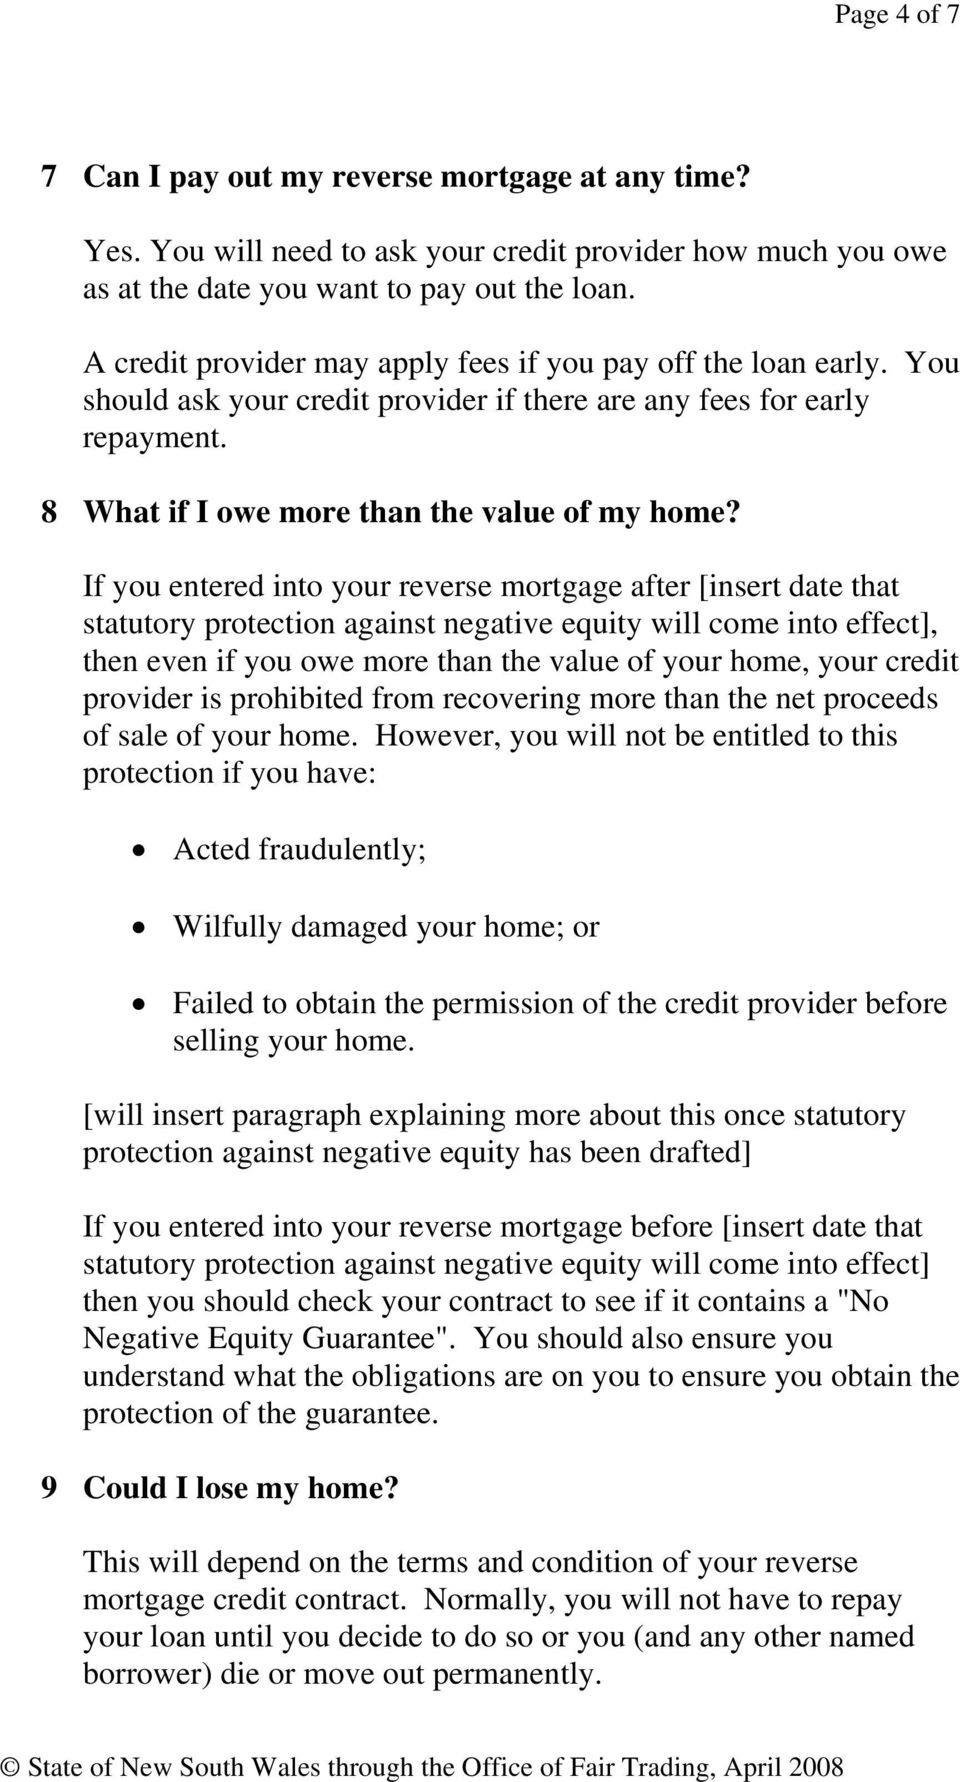 If you entered into your reverse mortgage after [insert date that statutory protection against negative equity will come into effect], then even if you owe more than the value of your home, your